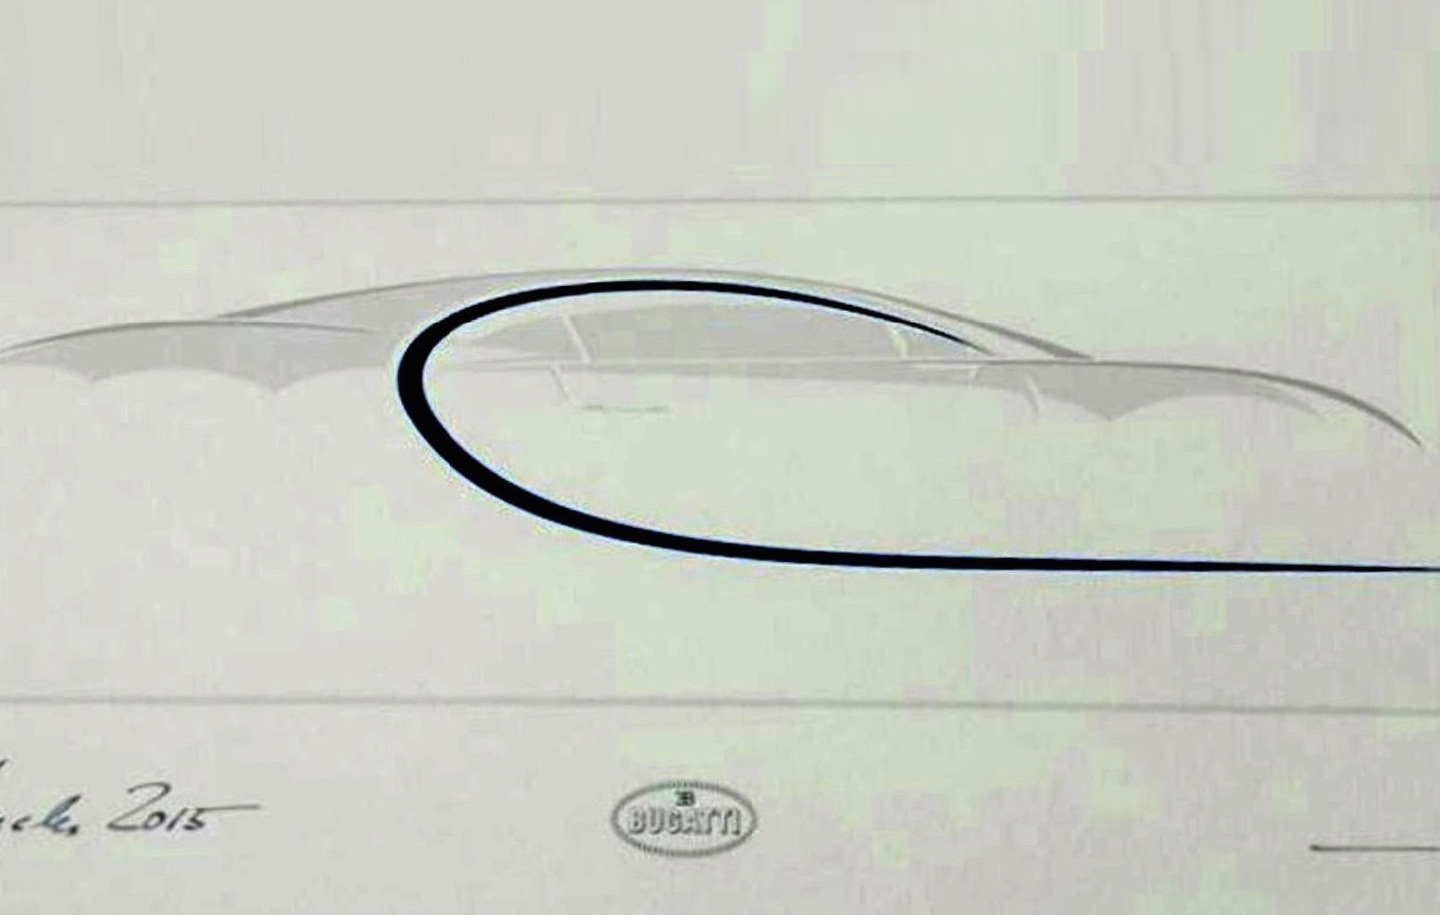 Bugatti Chiron Previewed To Potential Buyers With Sketch